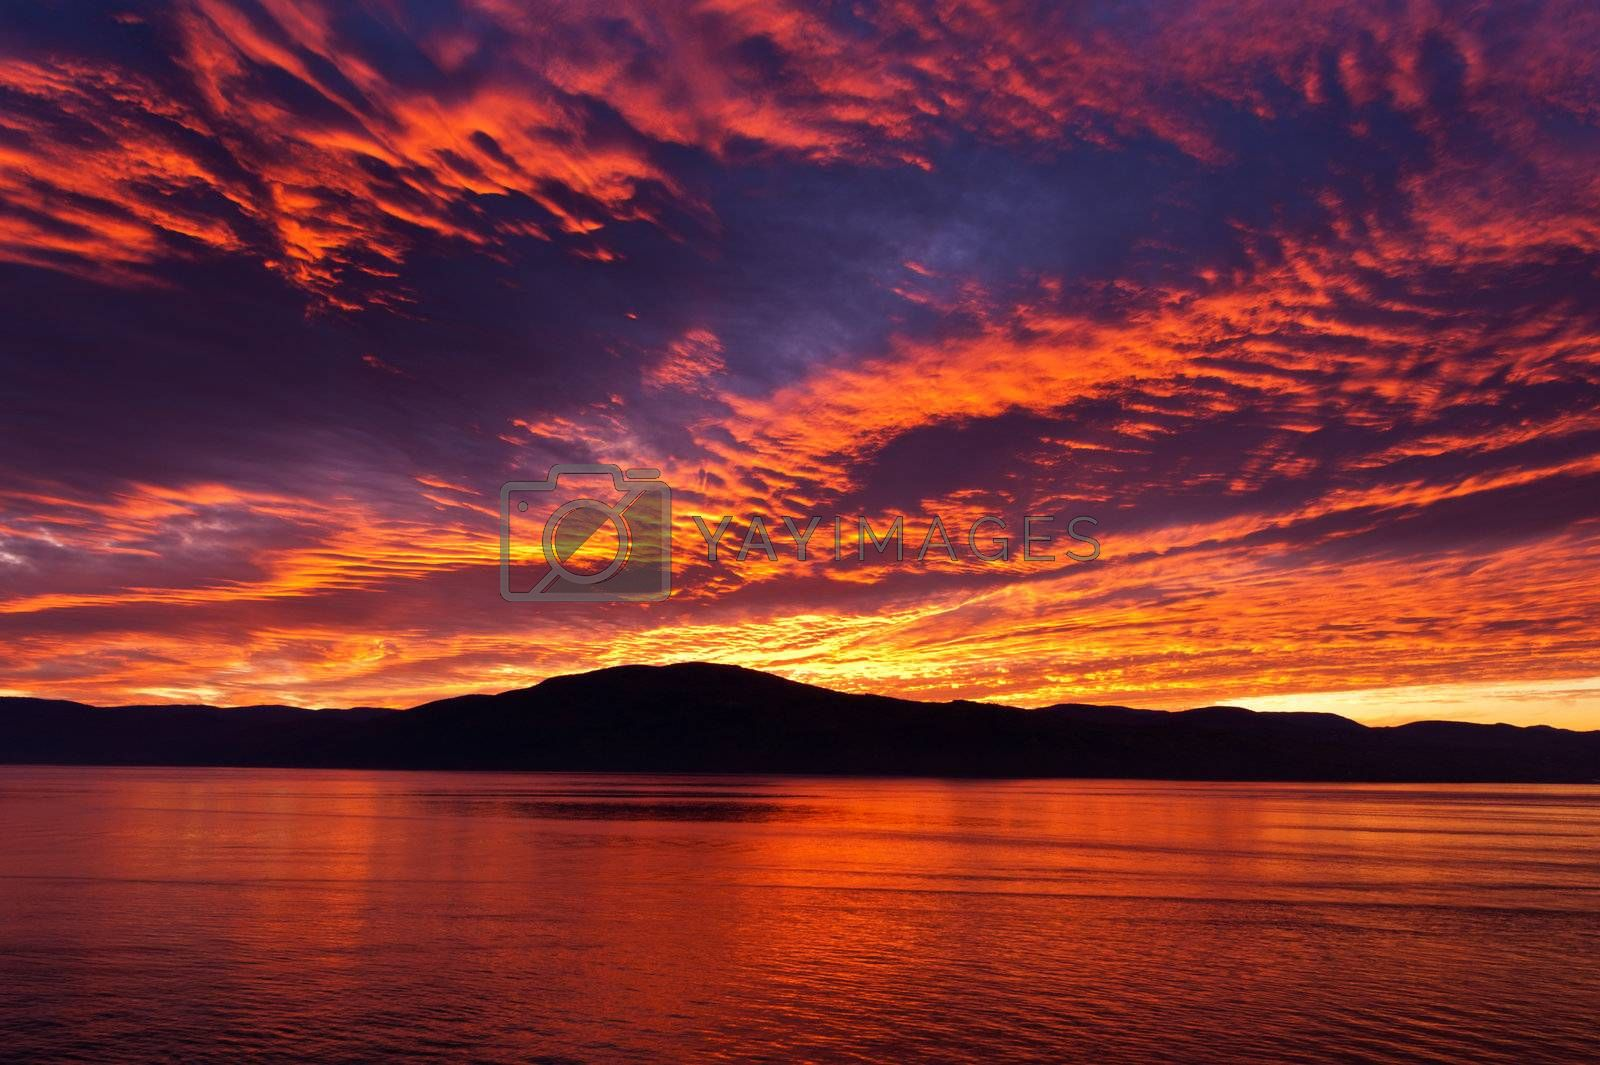 Amazing fiery burning evening sky by 3523Studio